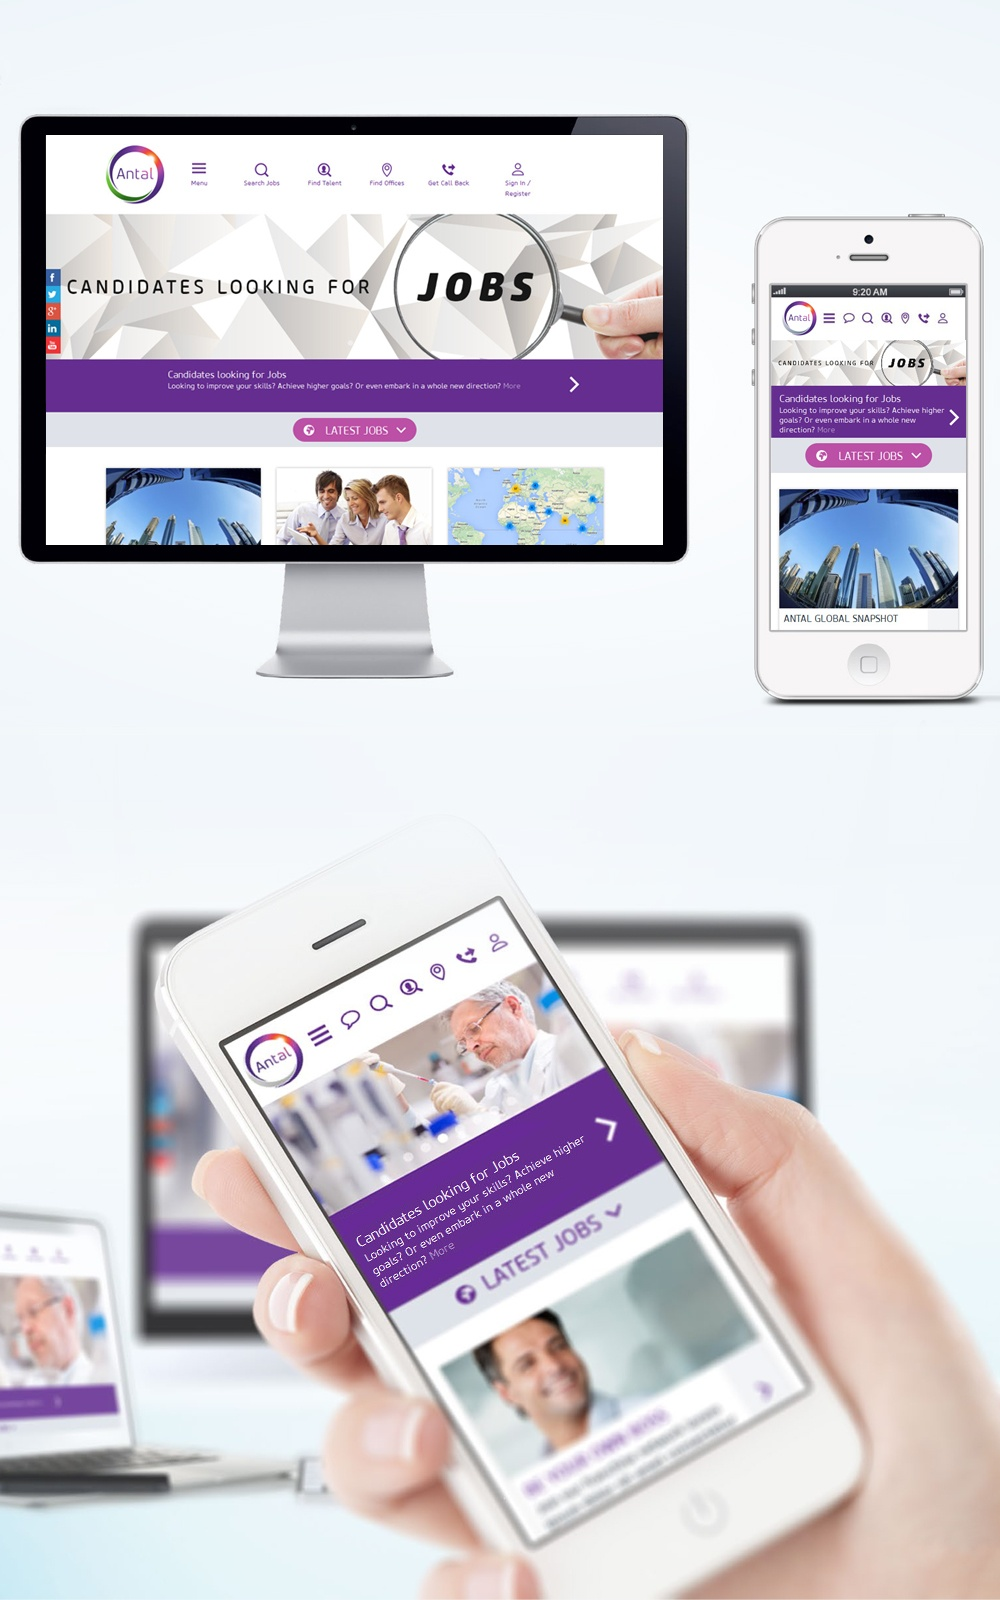 antal international recruitment website design uk job boards antal international